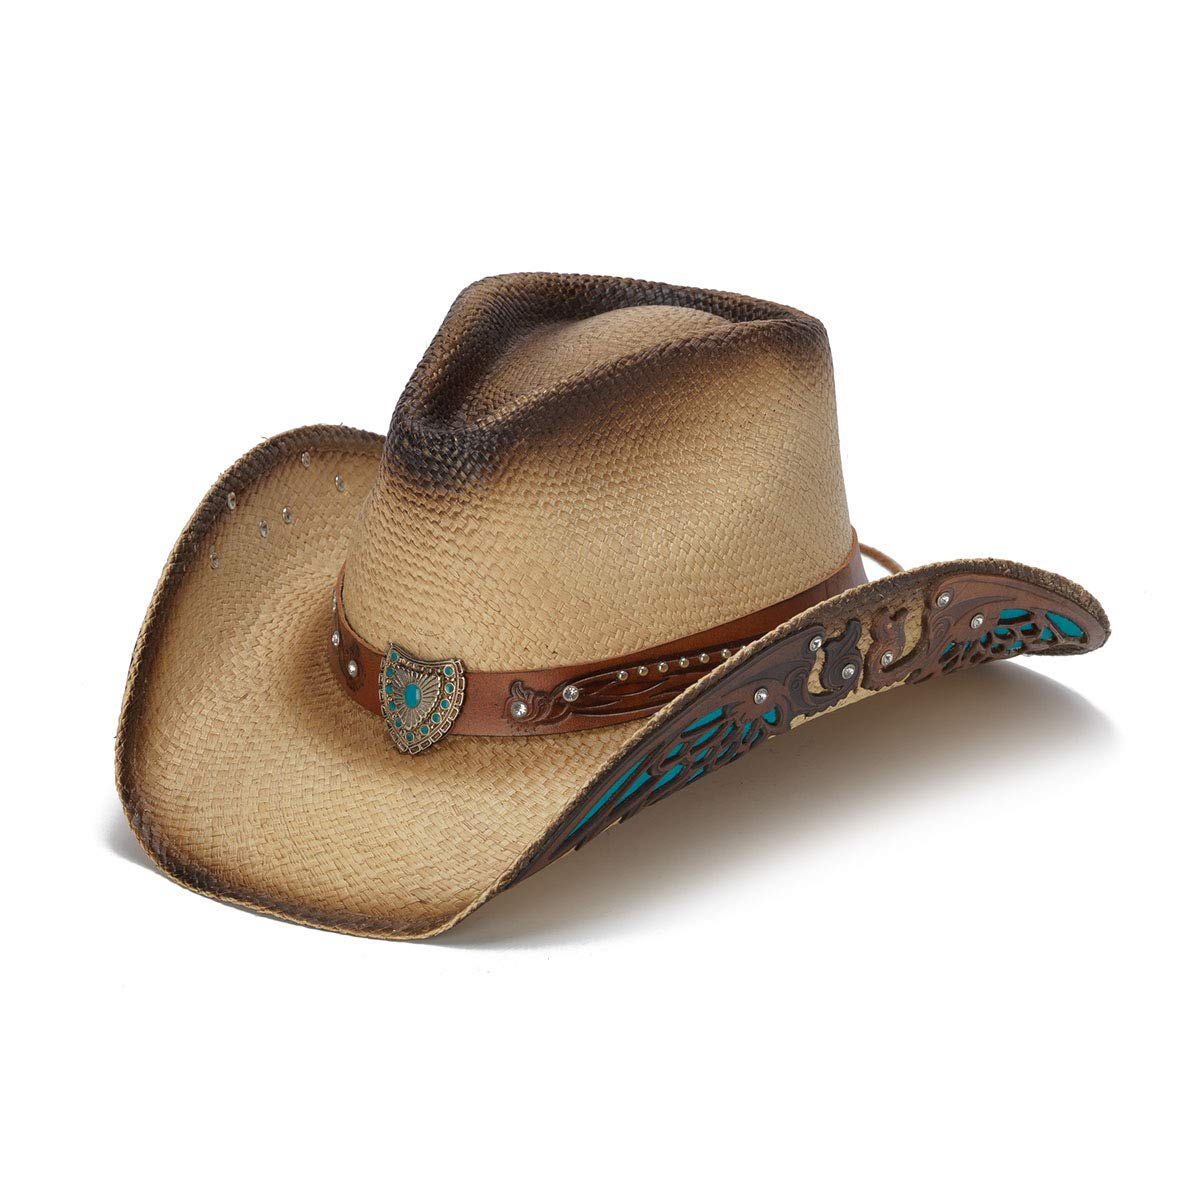 Stampede Hats Womens Concho Turquoise Wings Rhinestone Western Hat